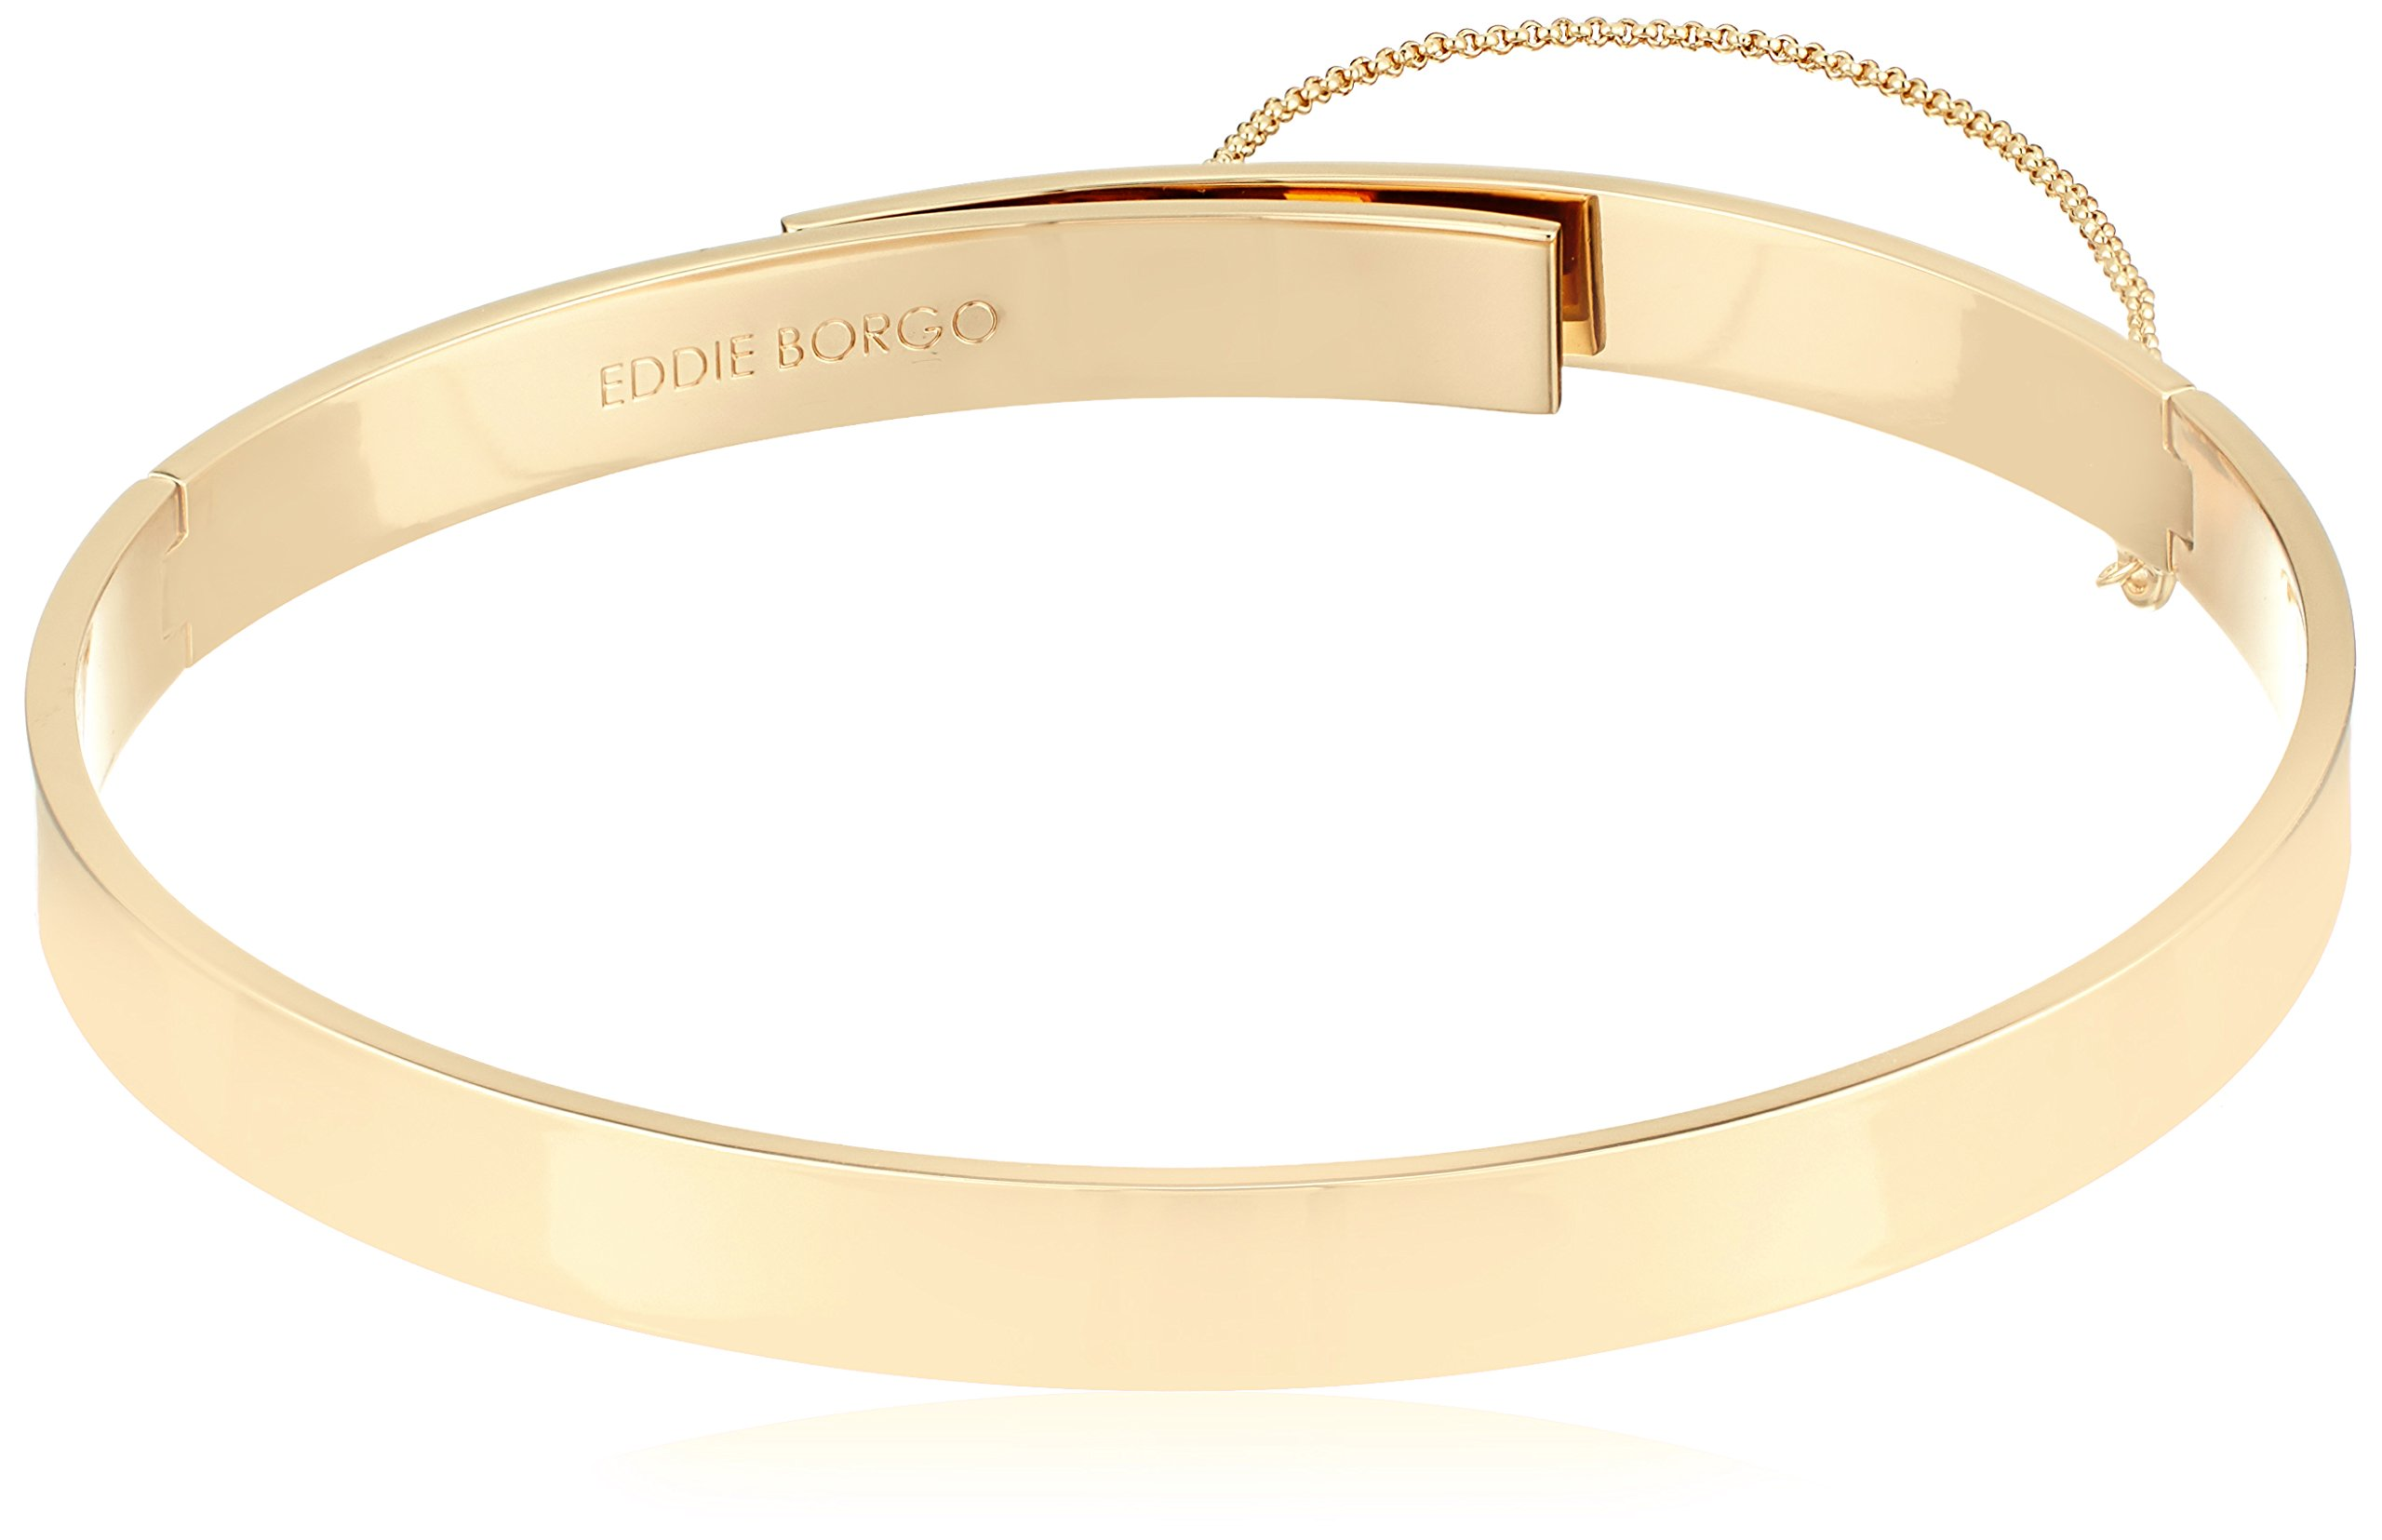 EDDIE BORGO Small Safety Chain Gold Choker Necklace